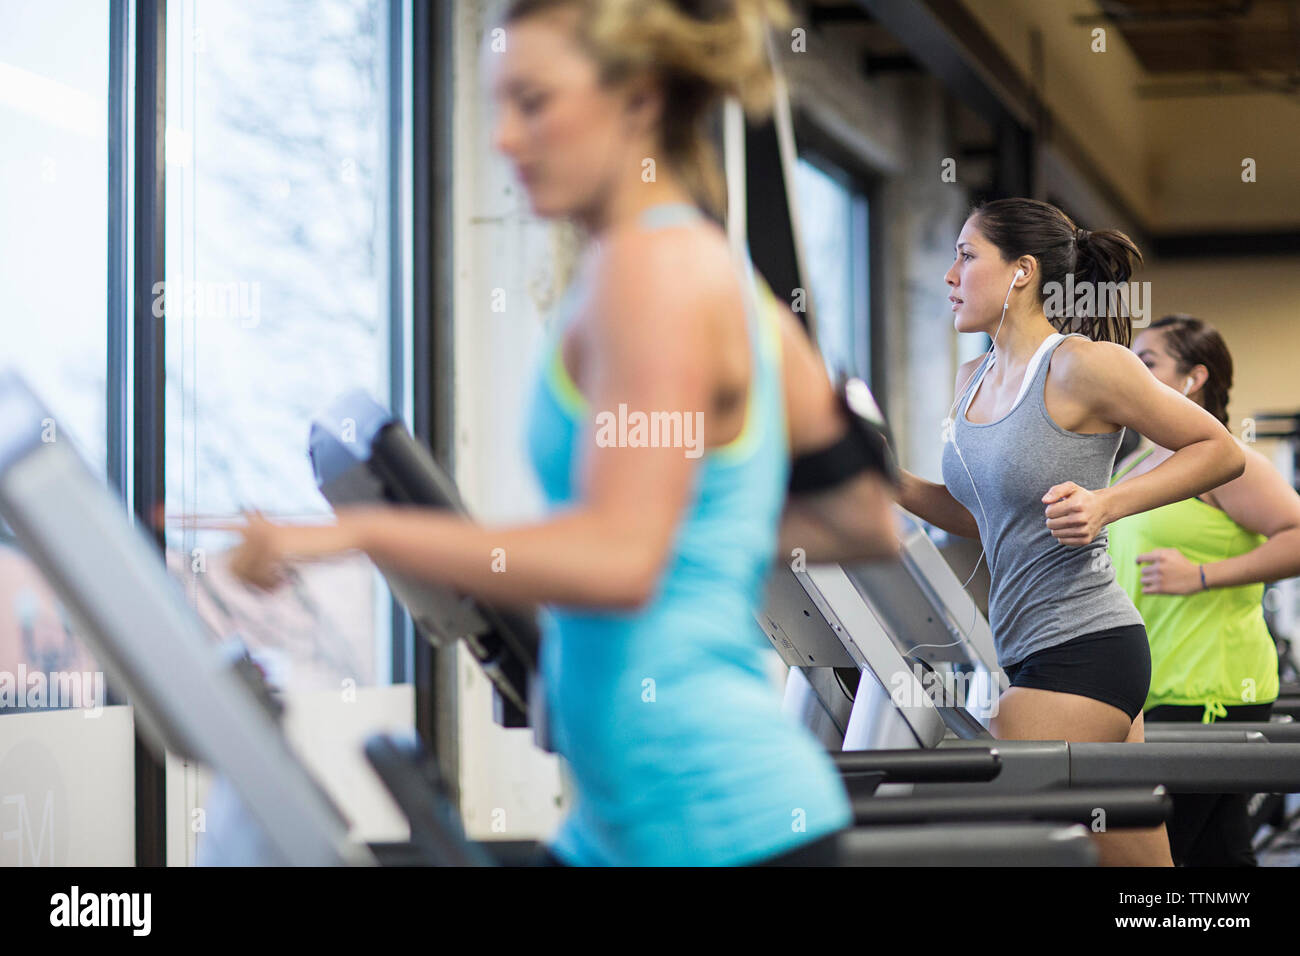 Women listening music while exercising on treadmills in gym - Stock Image